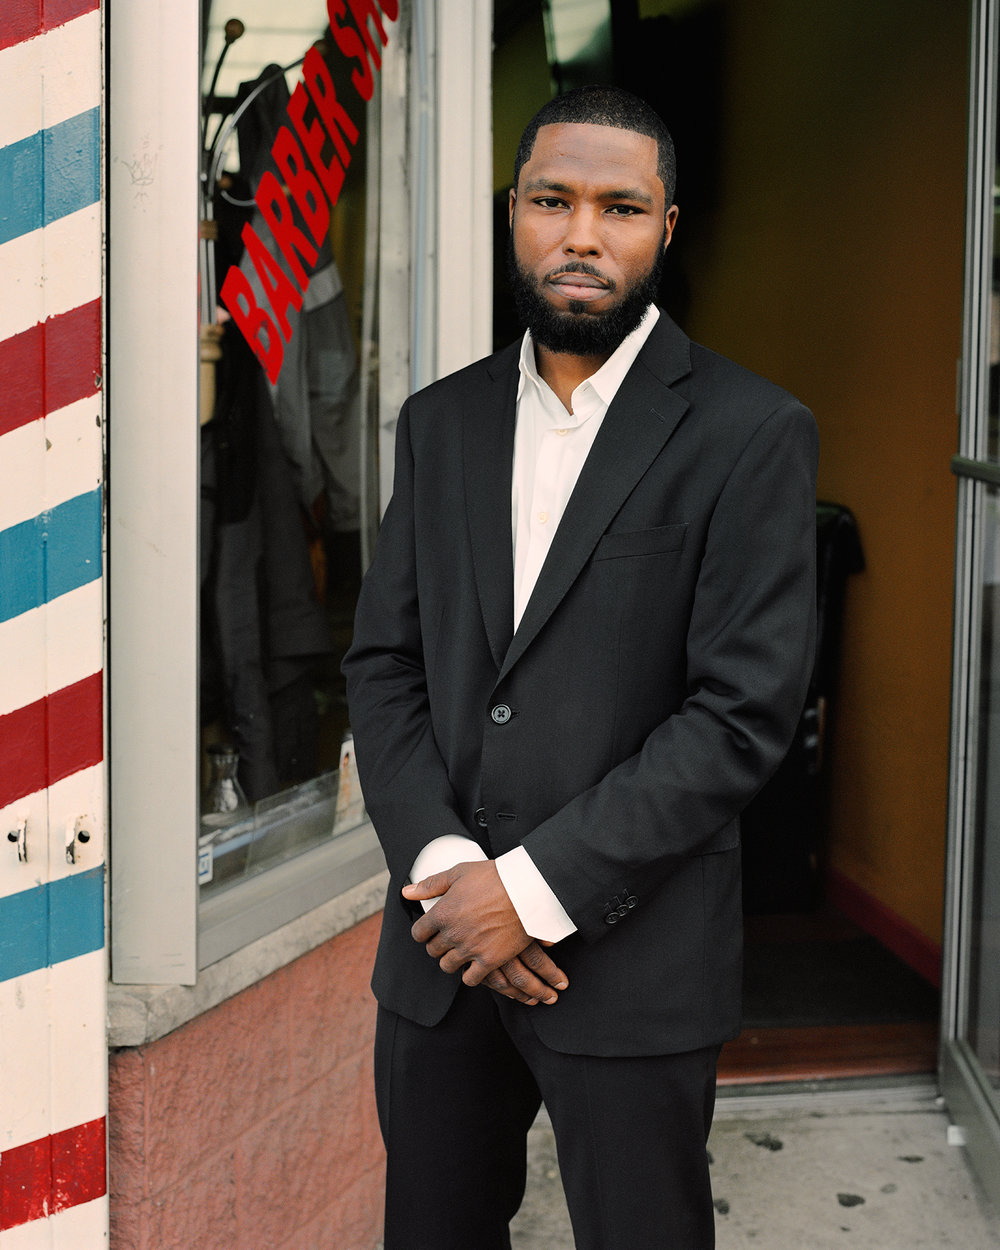 Michael, Straight Street, Paterson, NJ, 2011